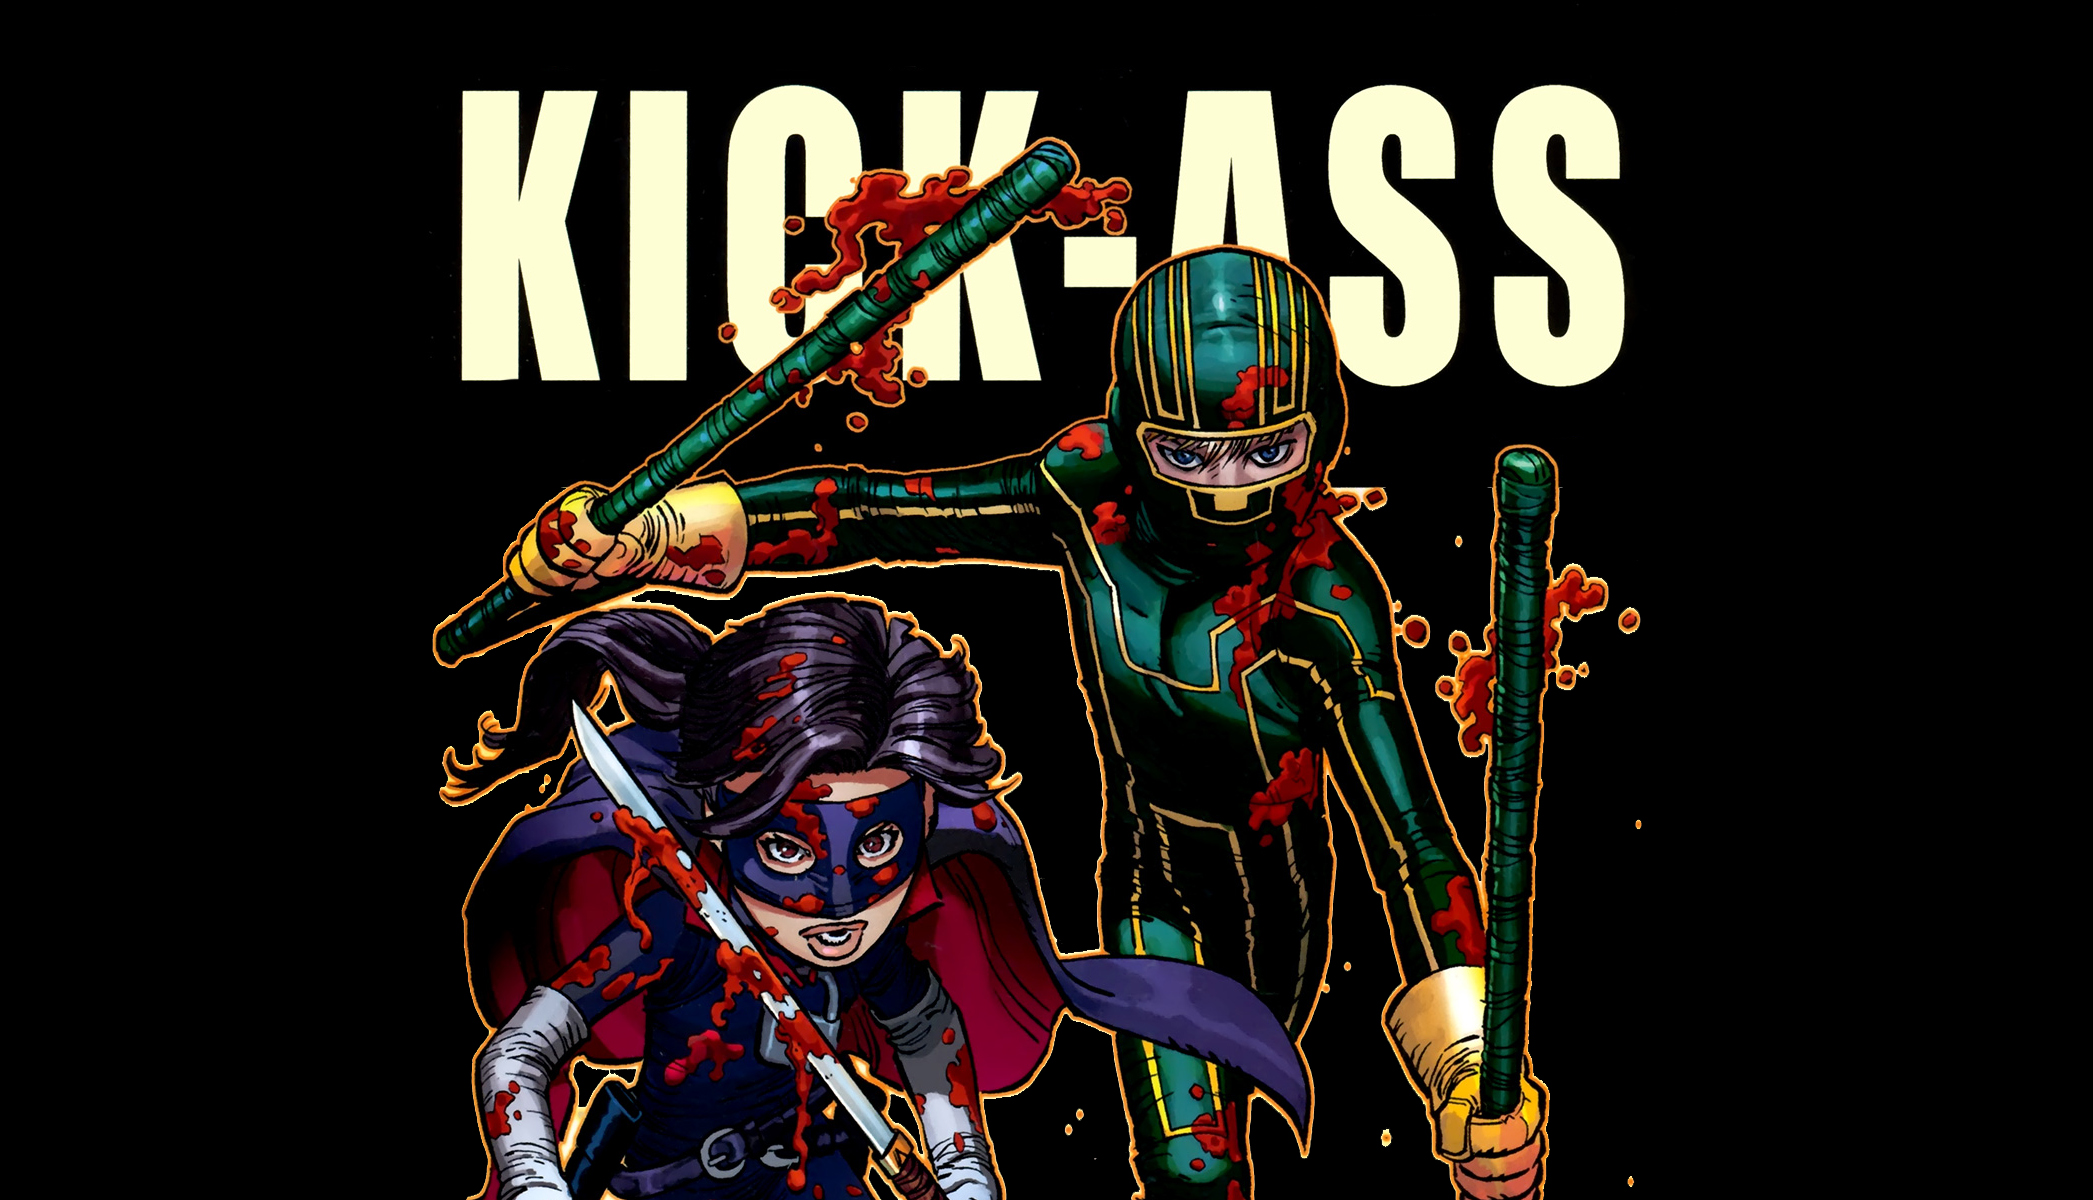 Movie - Kick-Ass  - Superhero - Comics Wallpaper